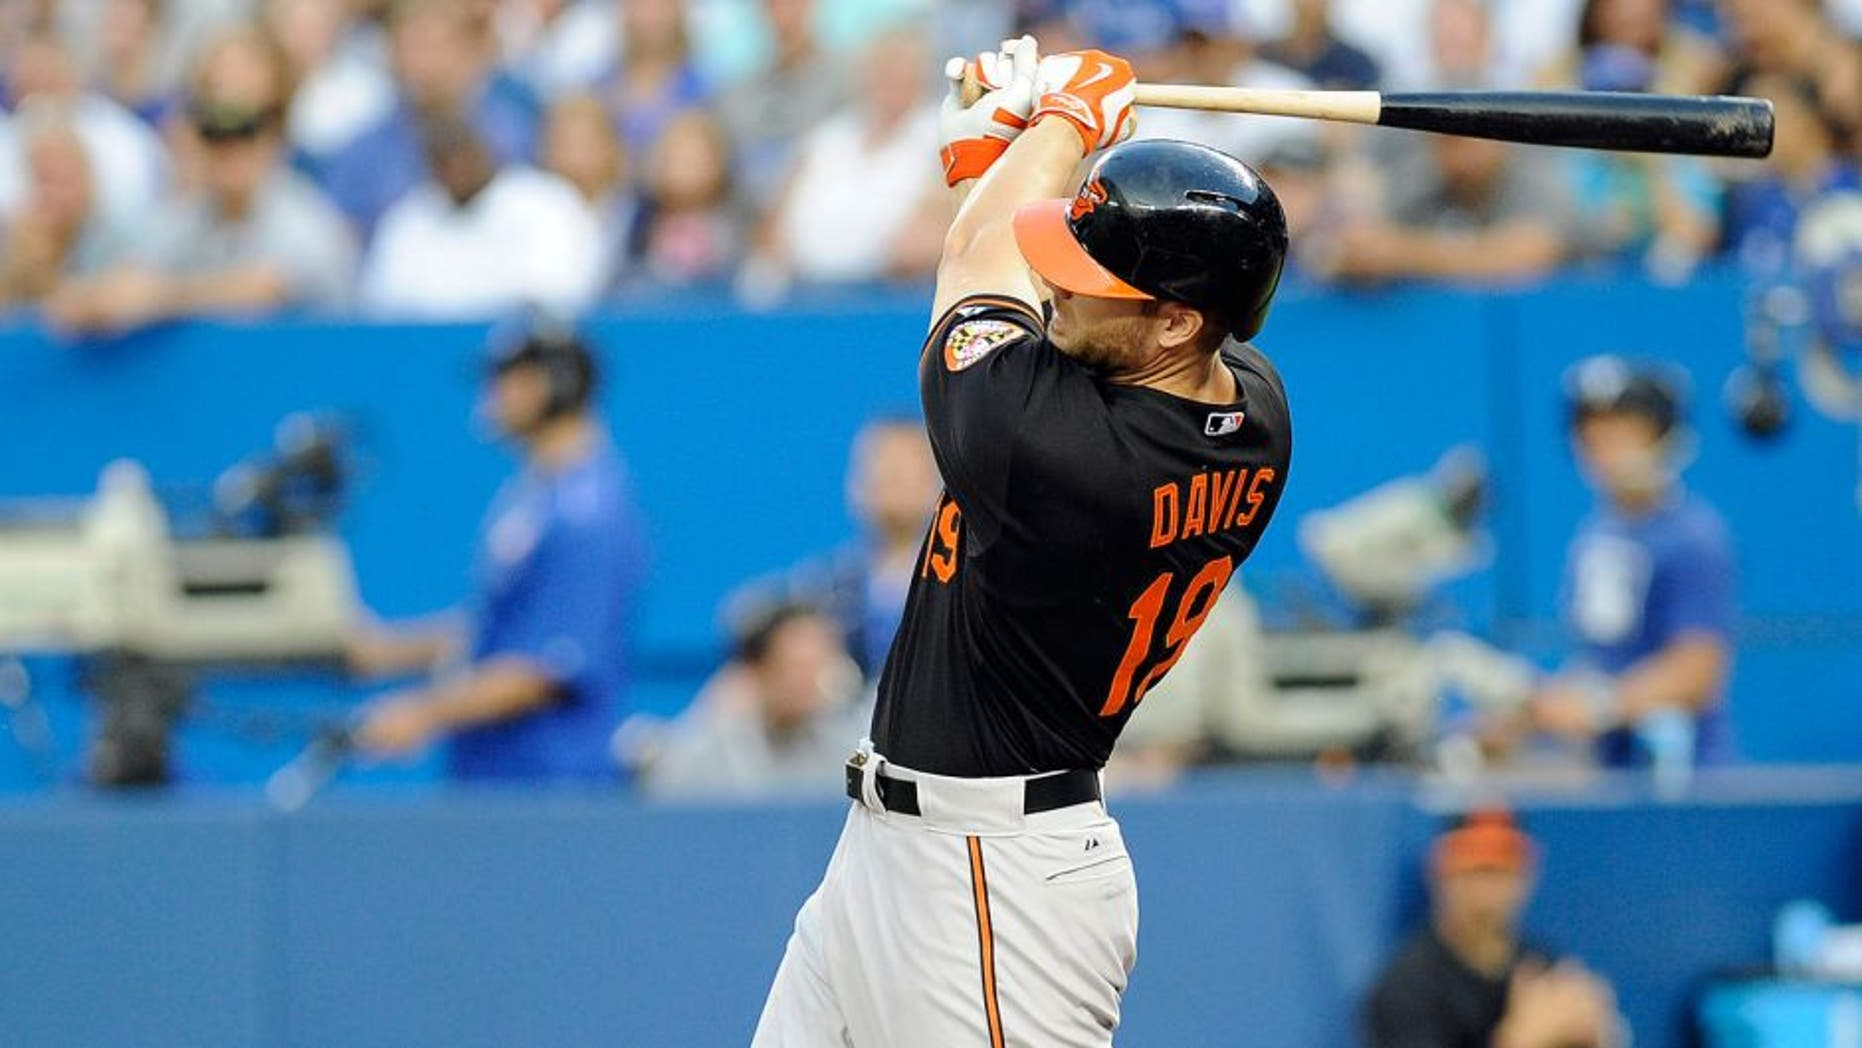 Sep 4, 2015; Toronto, Ontario, CAN; Baltimore Orioles first baseman Chris Davis (19) hits a home run against Toronto Blue Jays in the second inning at Rogers Centre. Mandatory Credit: Peter Llewellyn-USA TODAY Sports